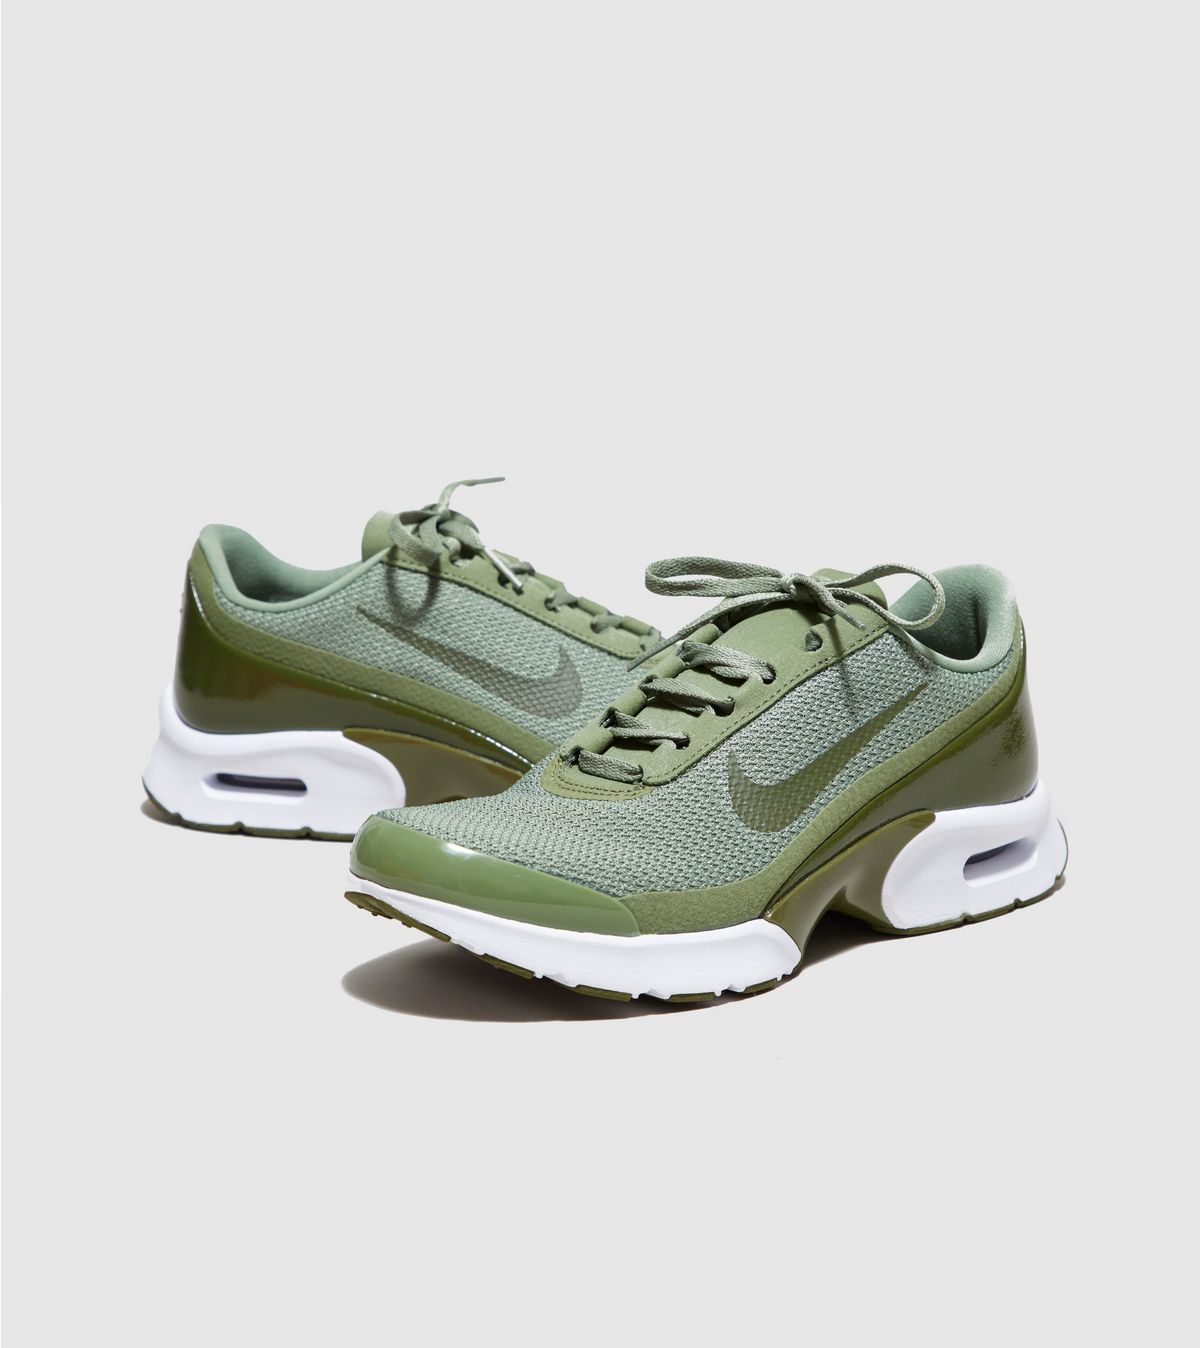 f824e1e4585 Latest Nike Air Max Selection at size  - size  blog